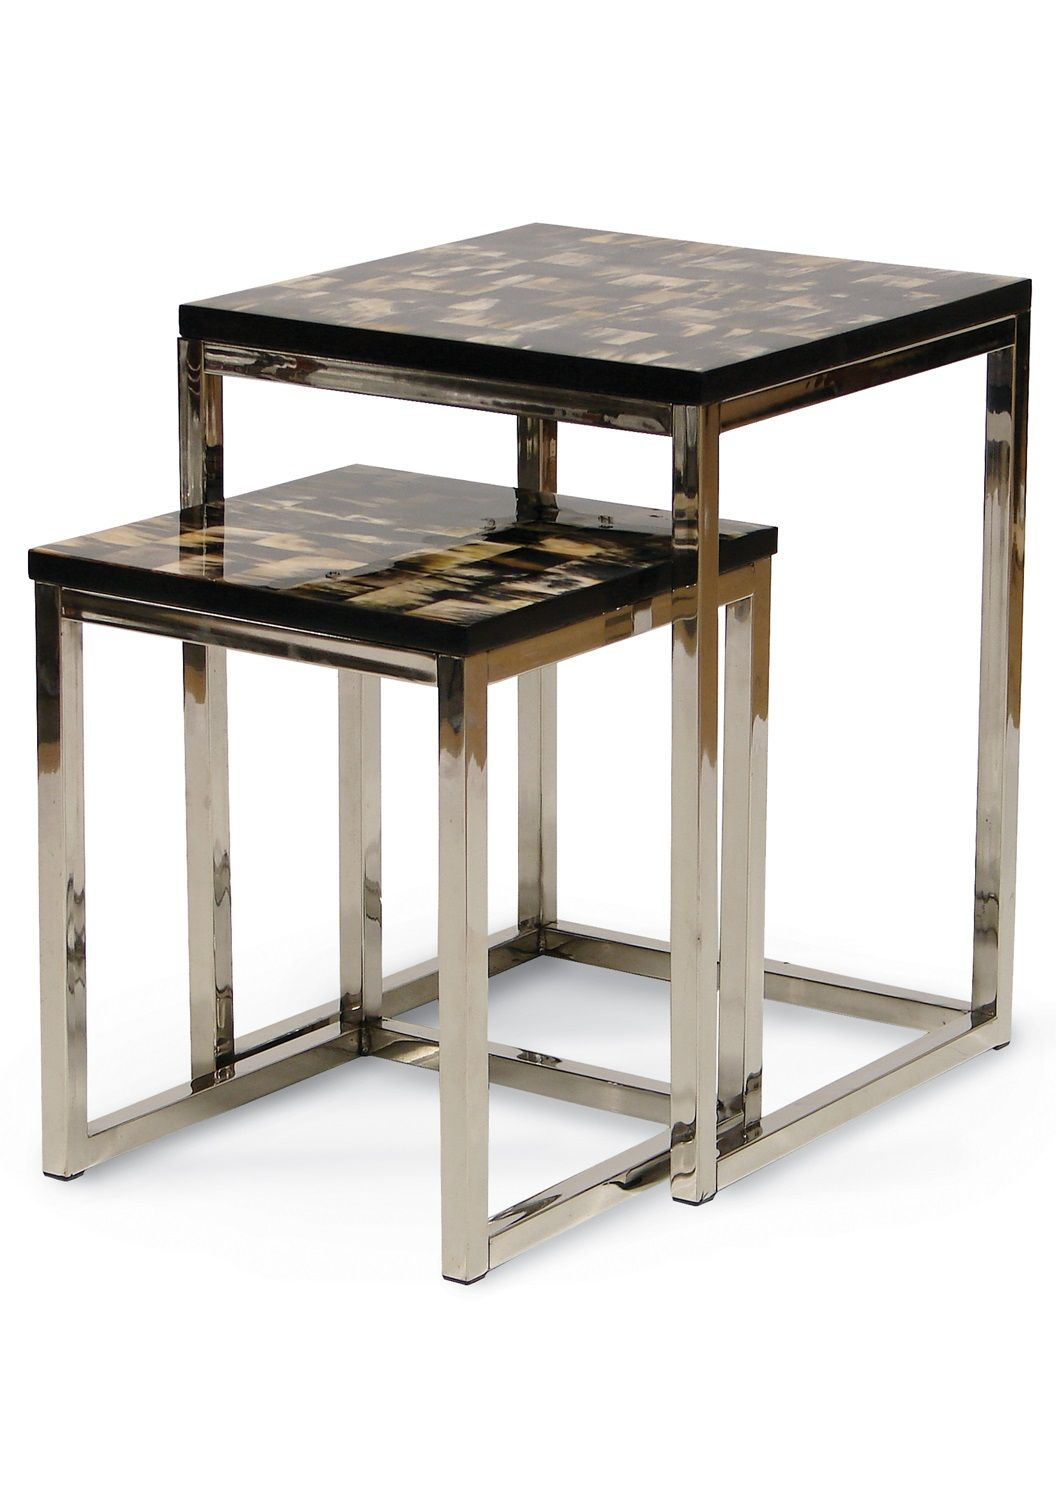 Dining furniture instyle decor com beverly hills side tables end tables lamp tables